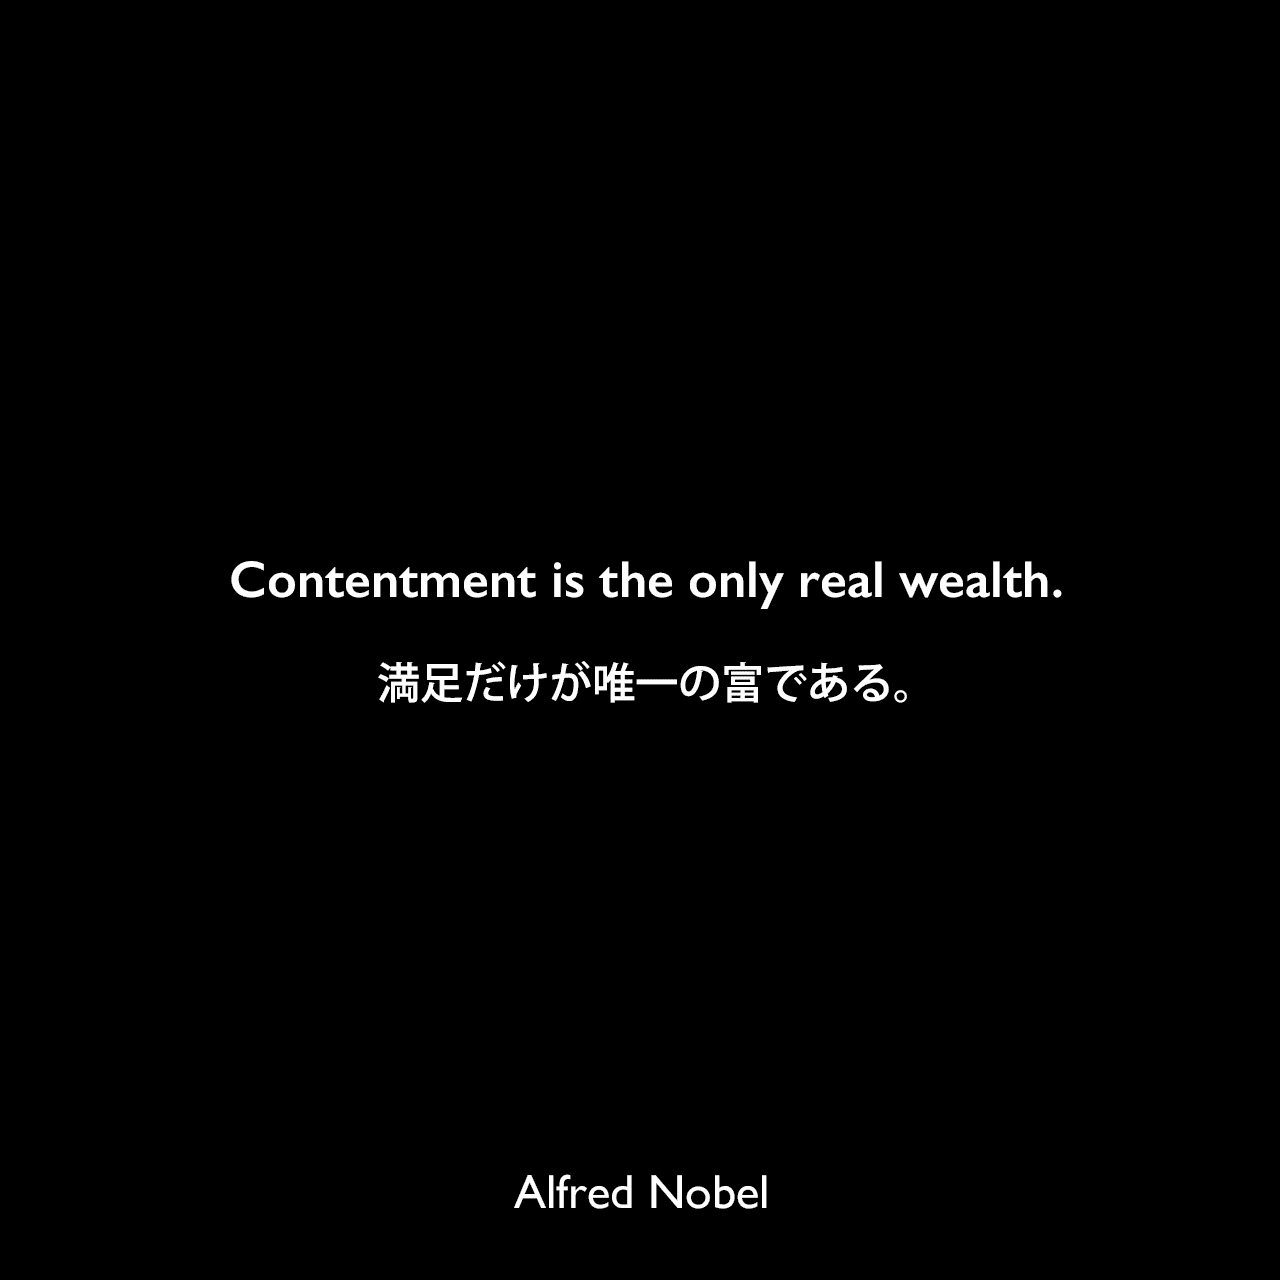 Contentment is the only real wealth.満足だけが唯一の富である。Alfred Nobel